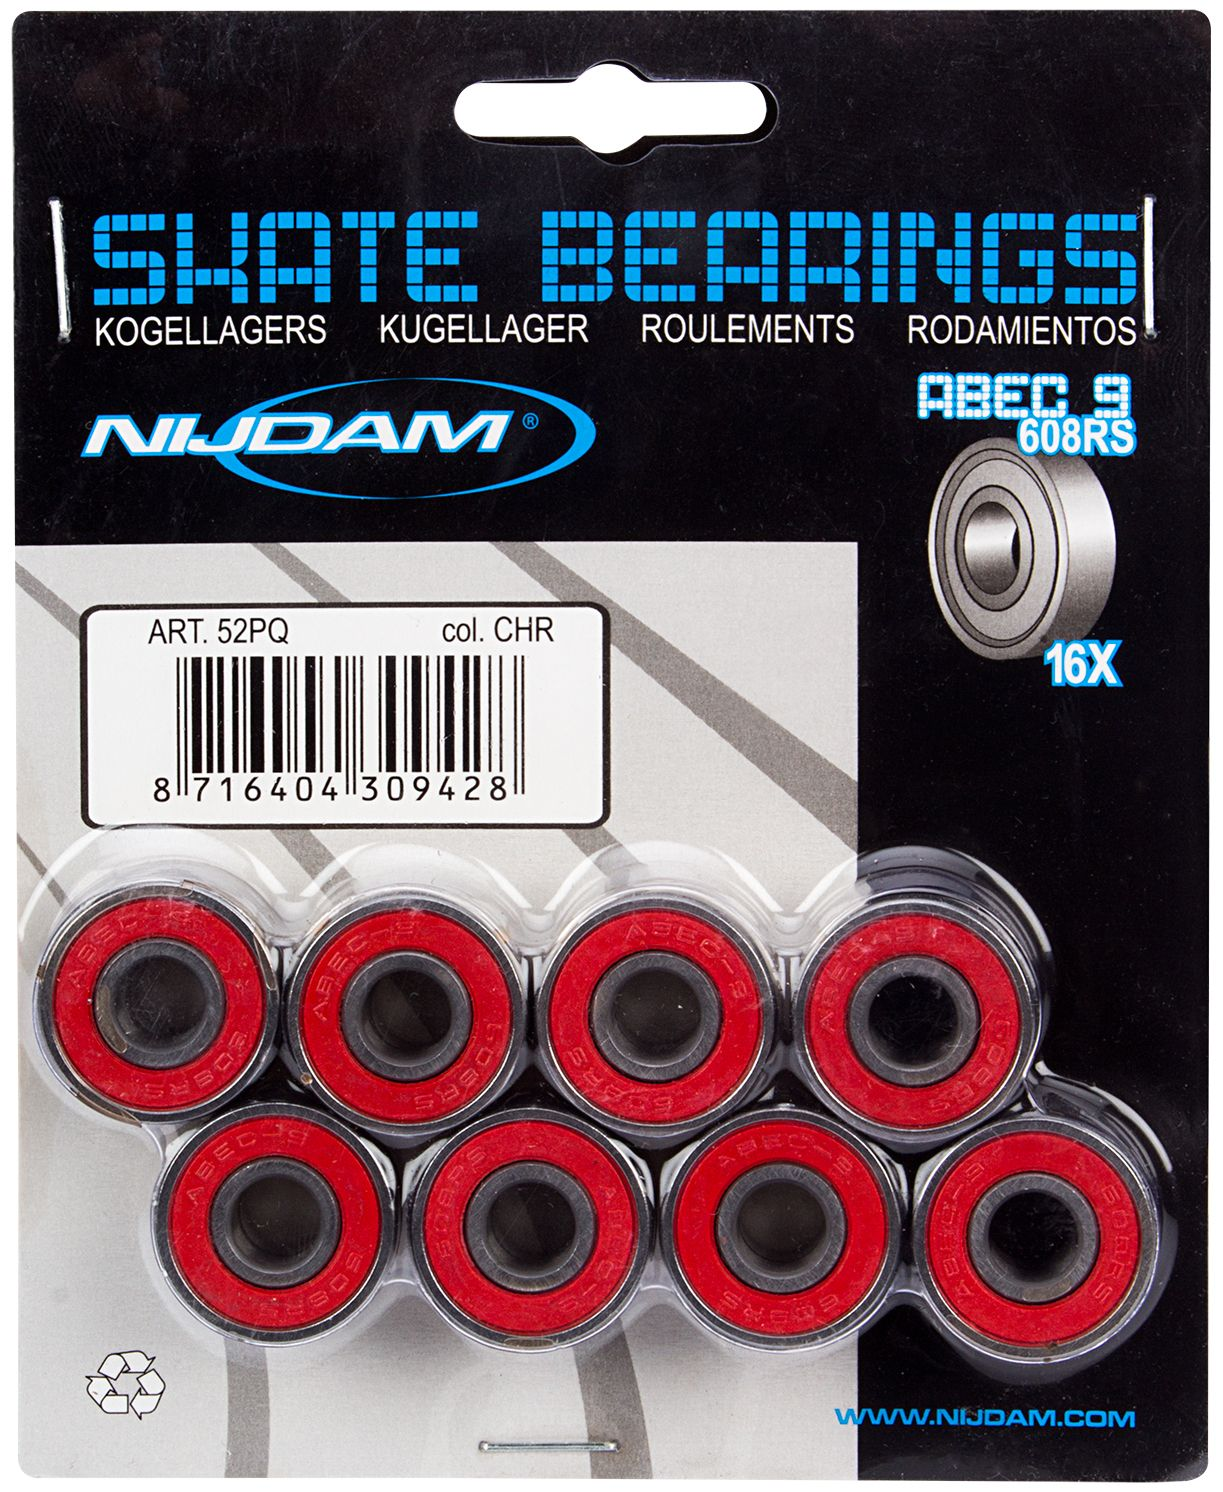 Kogellagers Chroom Speed • ABEC 9 •